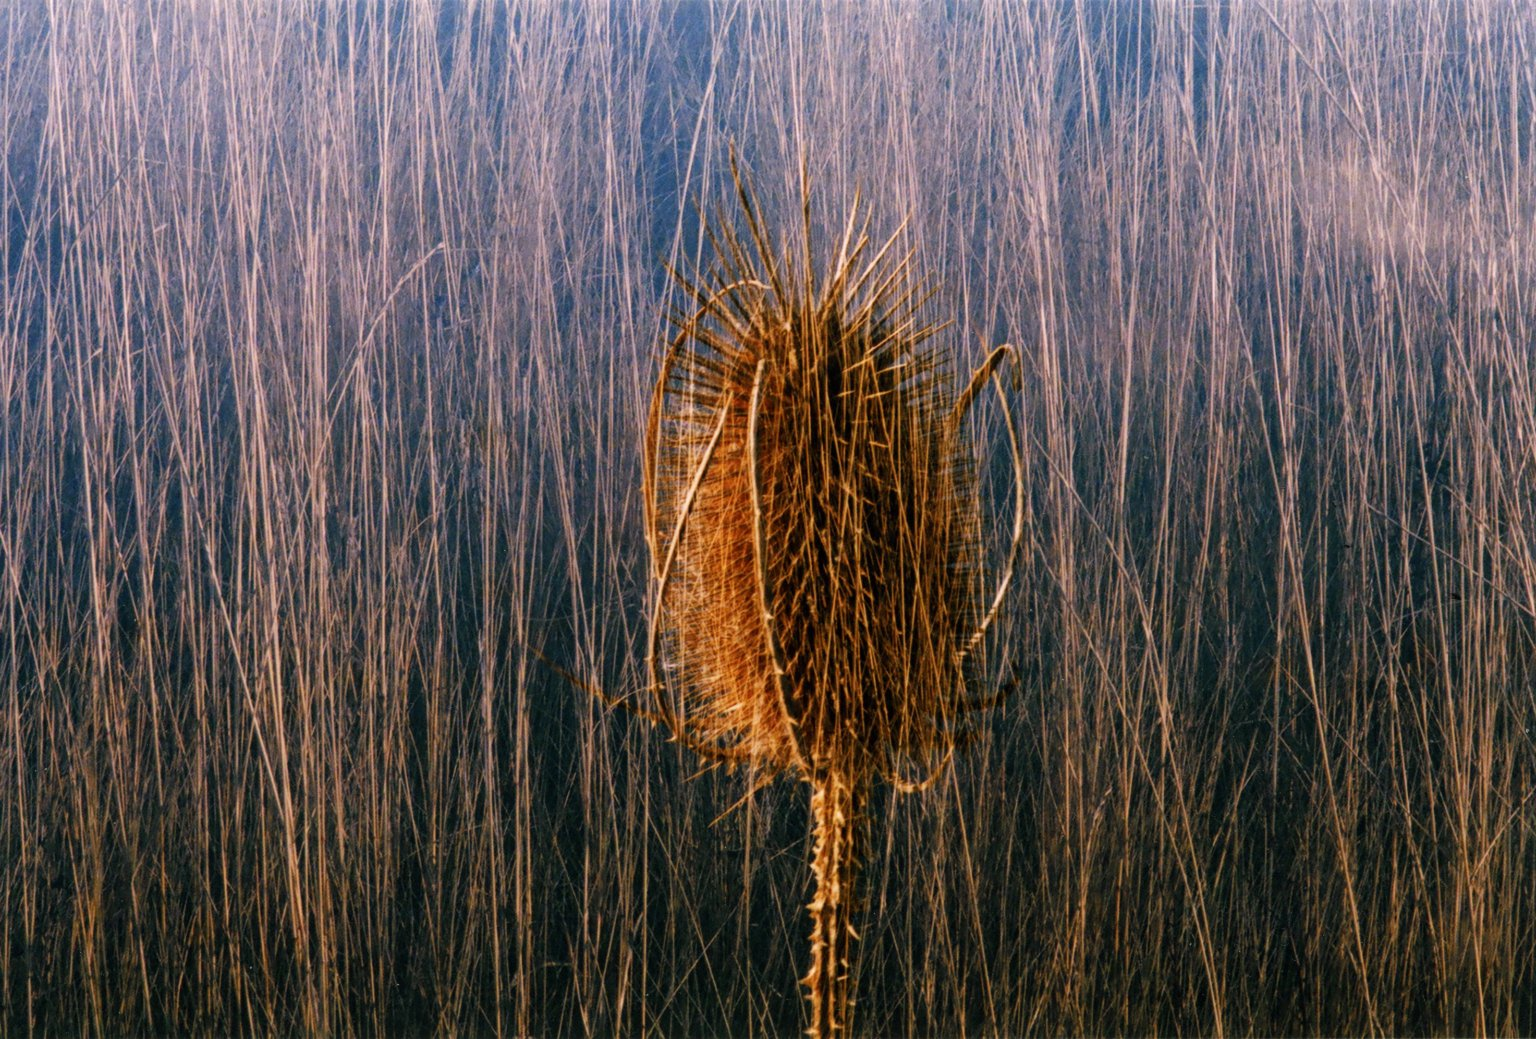 Double Exposure - Seed stalk over grasses